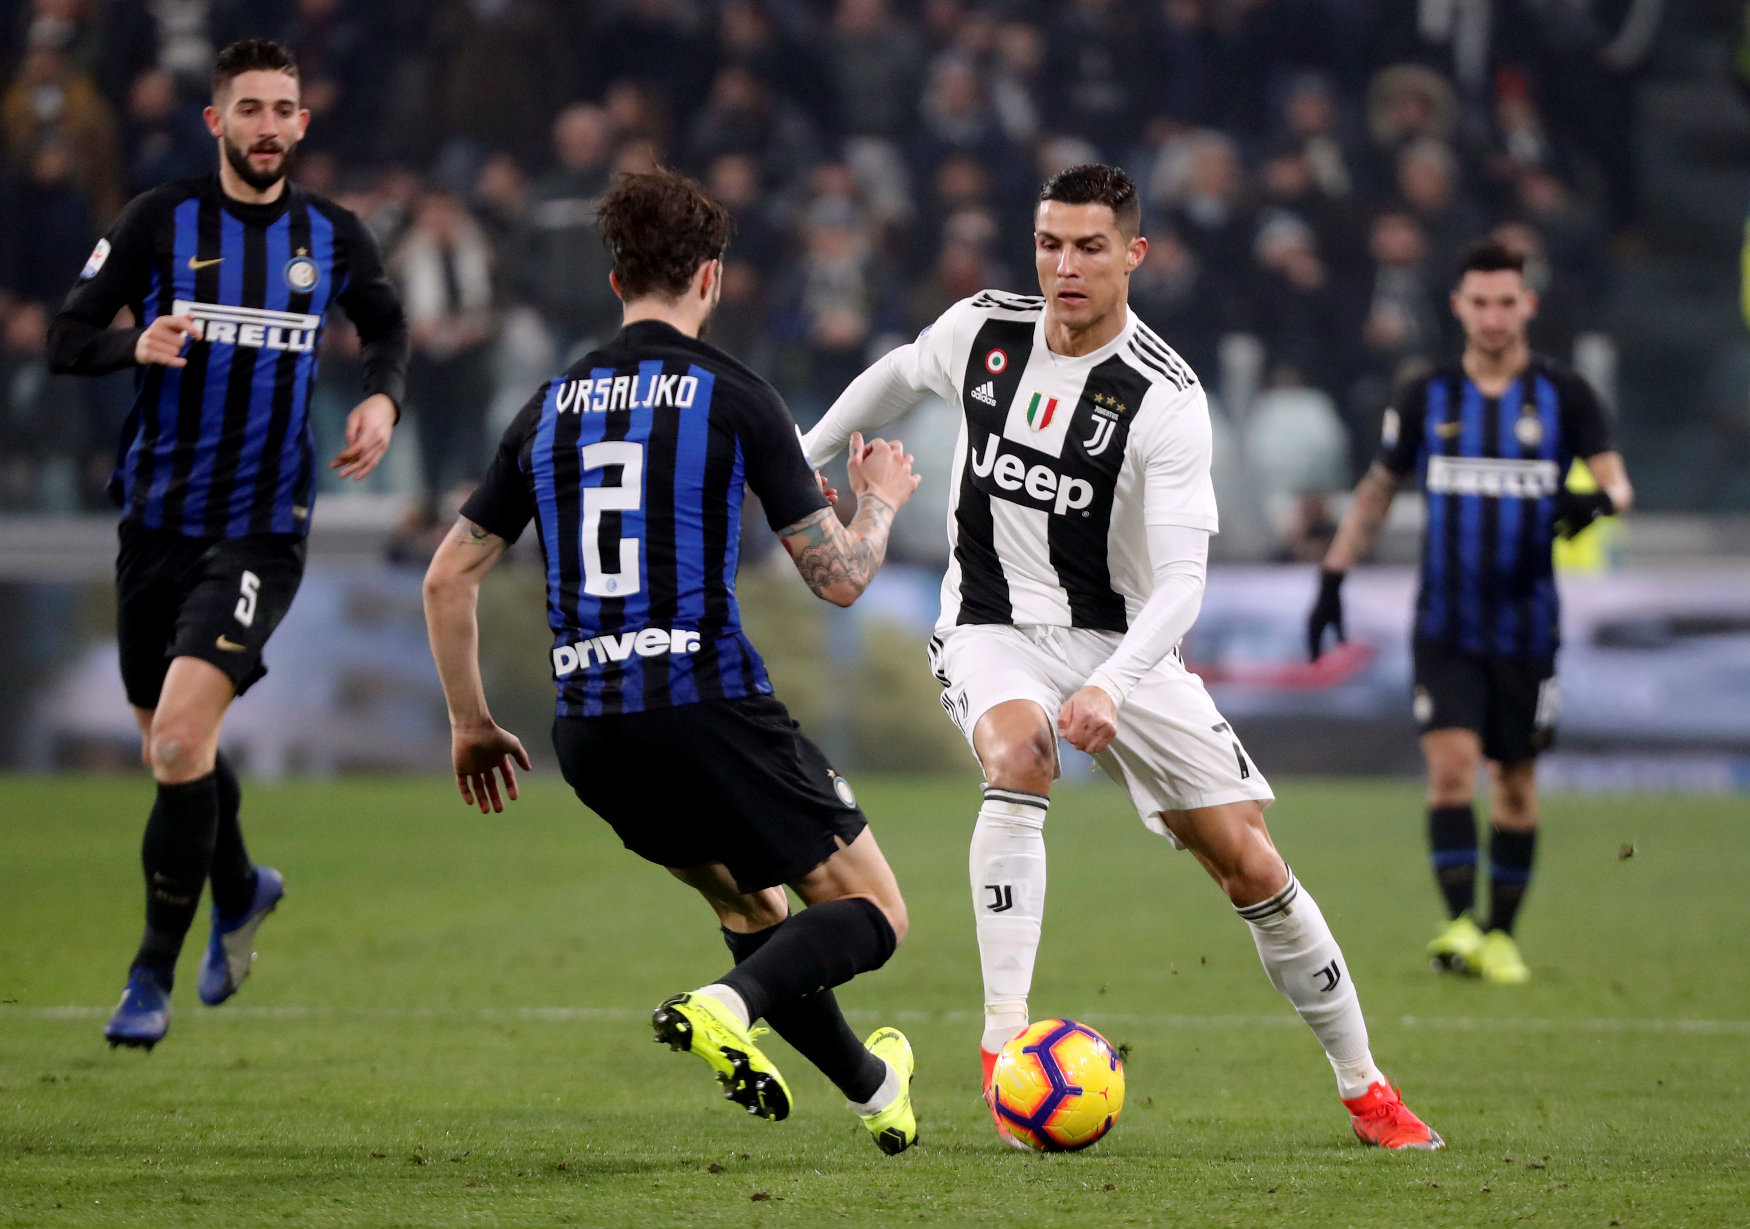 Soccer Football - Serie A - Juventus v Inter Milan - Allianz Stadium, Turin, Italy - December 7, 2018  Juventus' Cristiano Ronaldo in action with Inter Milan's Sime Vrsaljko   REUTERS/Stefano Rellandini